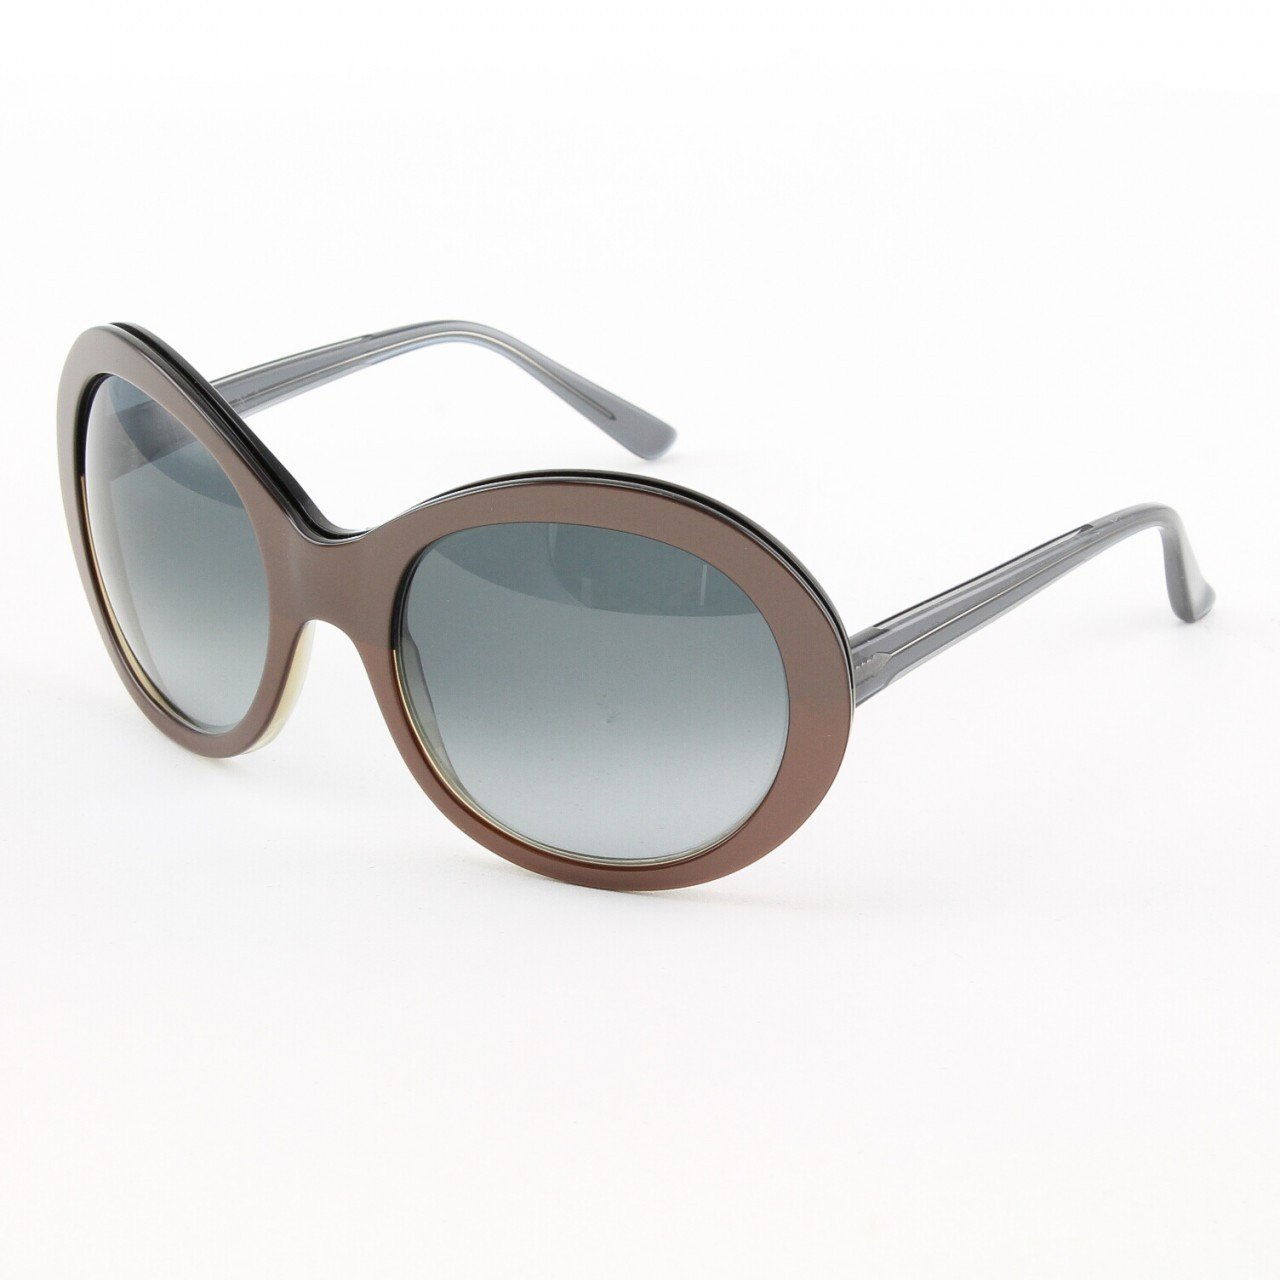 Marni MA162S Sunglasses Col. 07 Oversized Copper Frame with Gray Gradient Lenses